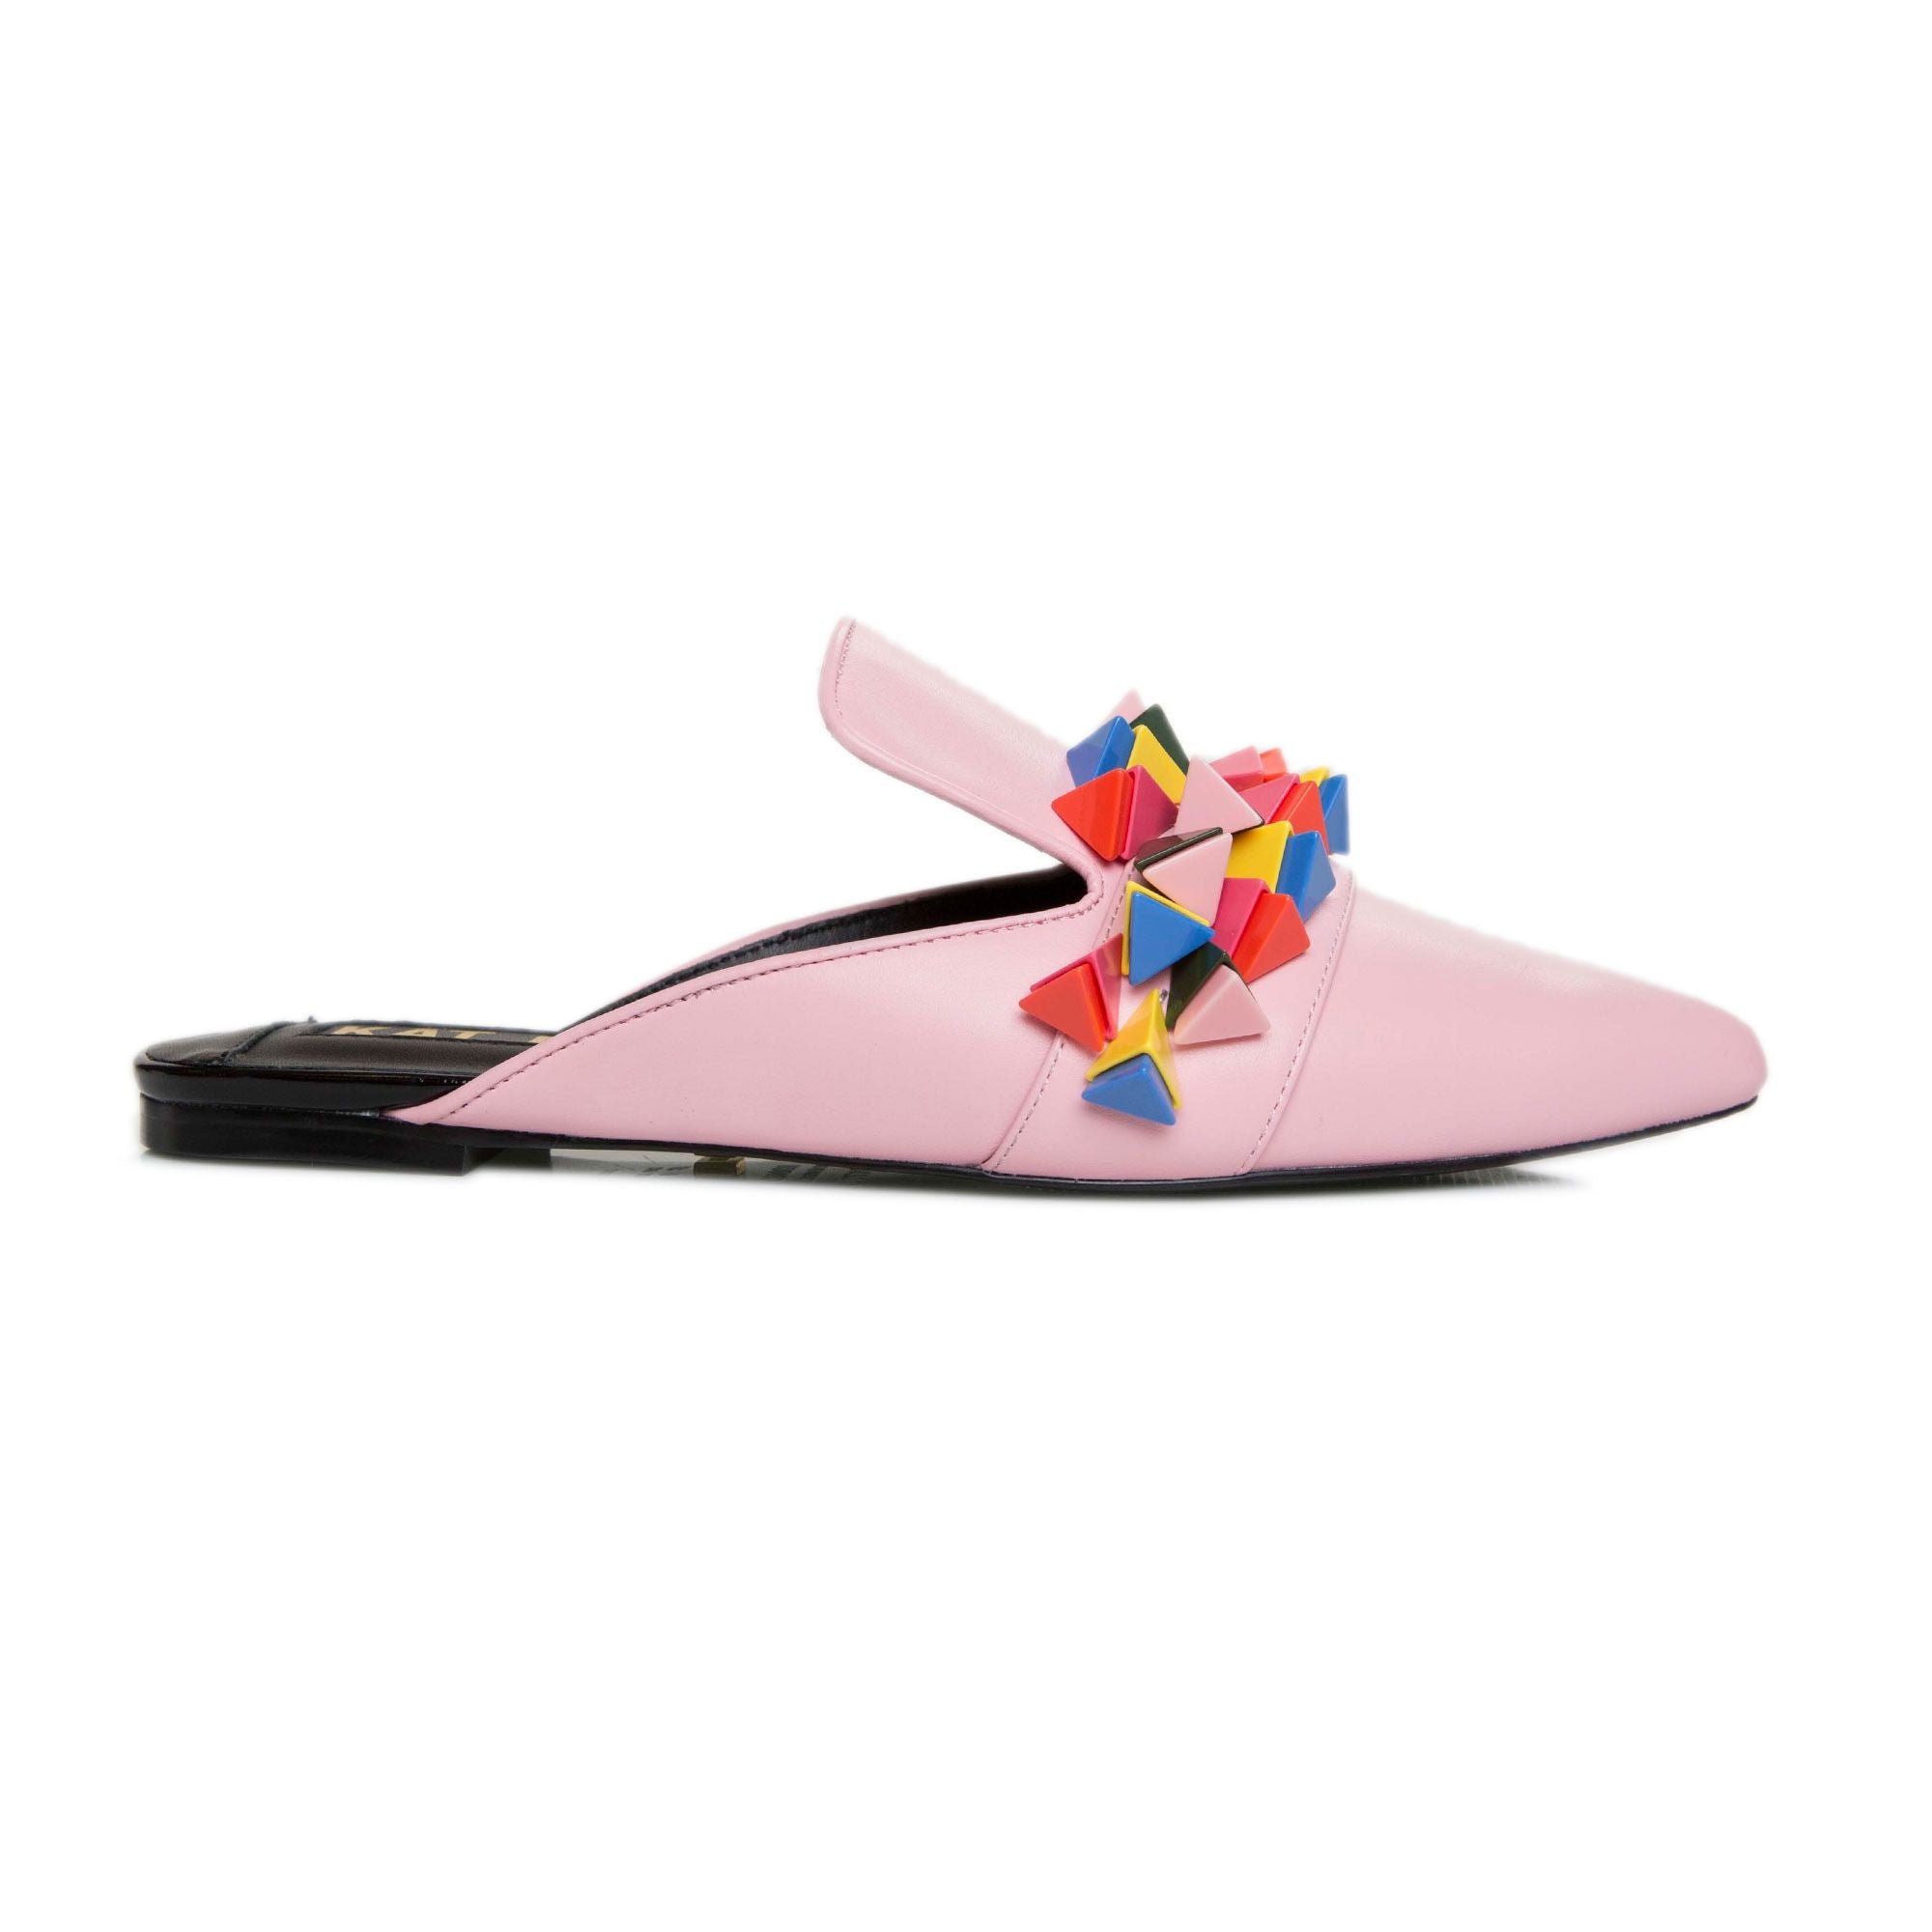 Outer side view of the kat maconie issa mule. This slip on mule is pink with multicolored tiny pyramid shaped decorations on the upper. The shoe has a pointed toe.